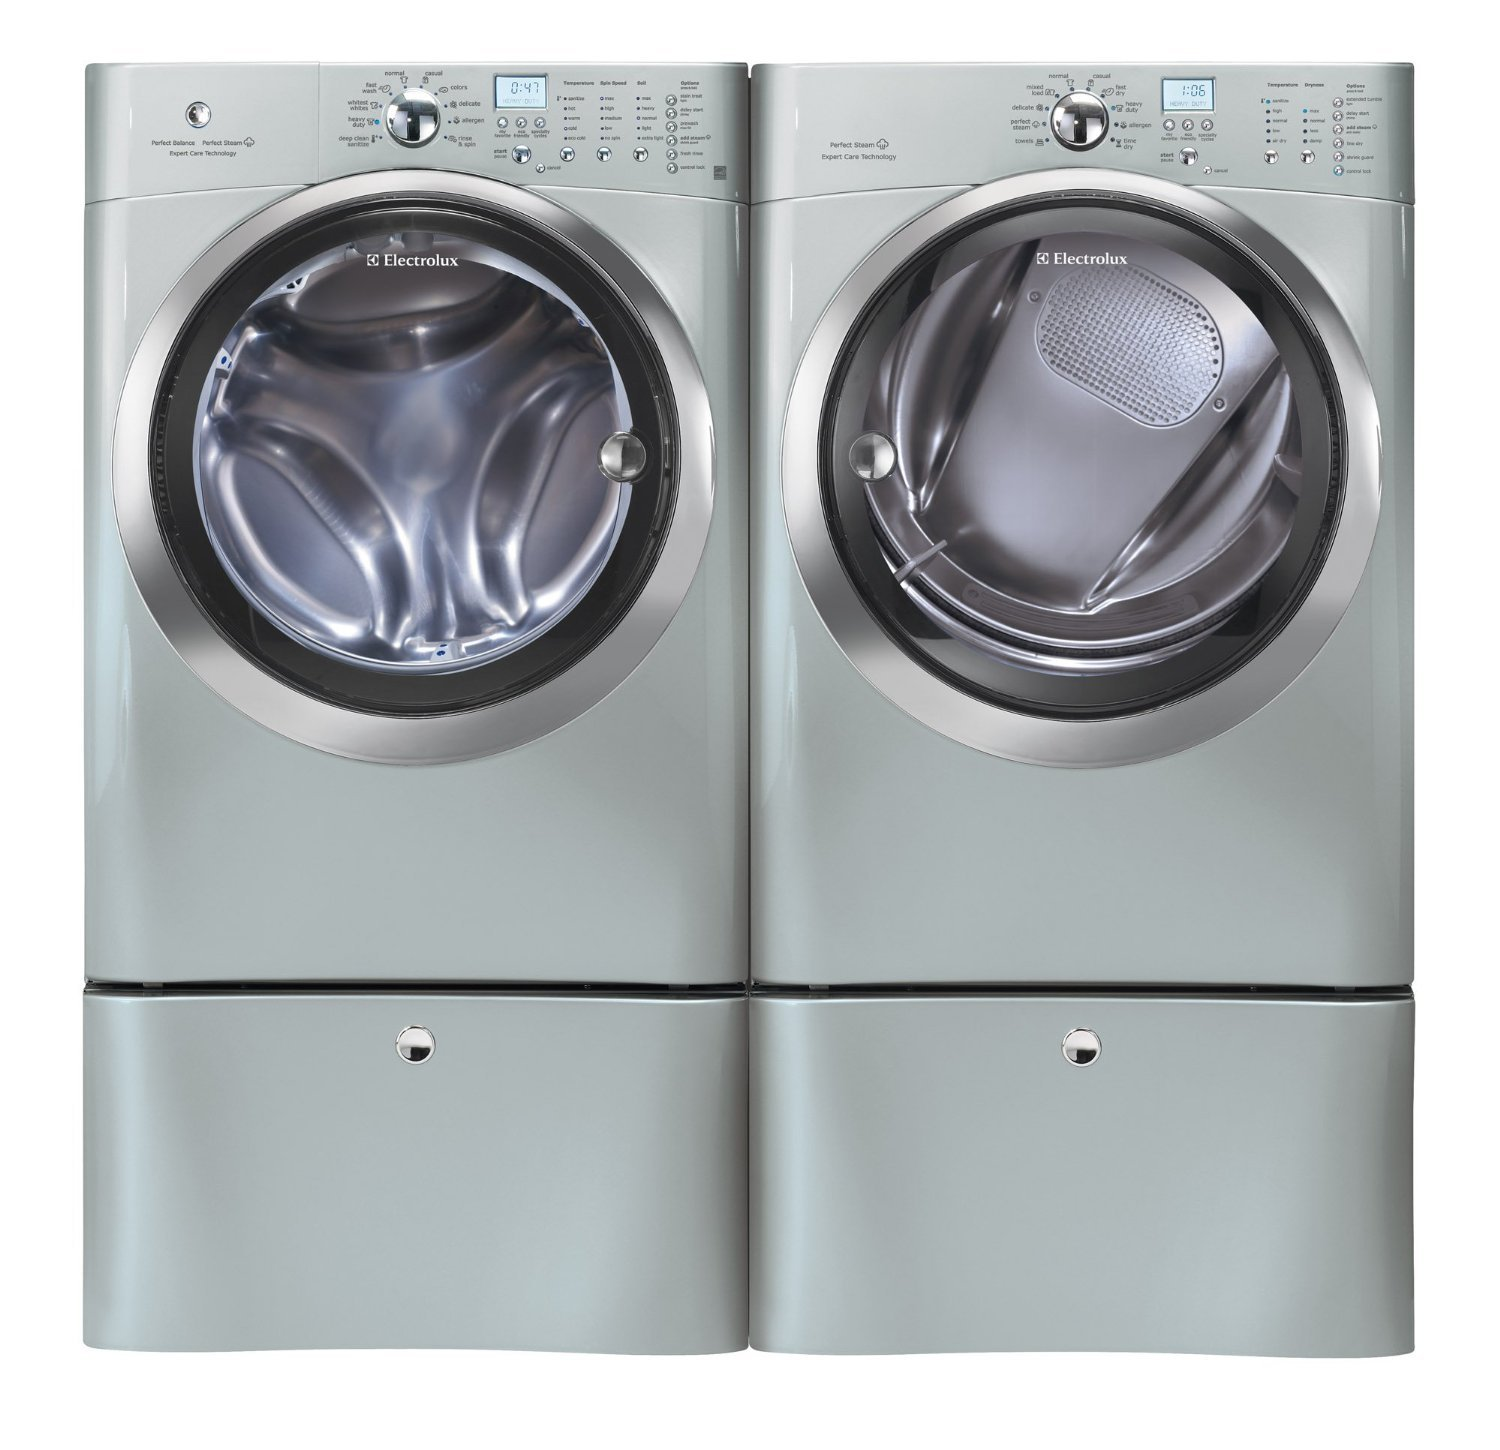 electrolux 24 washer. amazon.com: electrolux silver iq touch front load washer and steam gas dryer laundry set w/ pedestals eifls60lss_eimgd60lss_epwd15ss: appliances 24